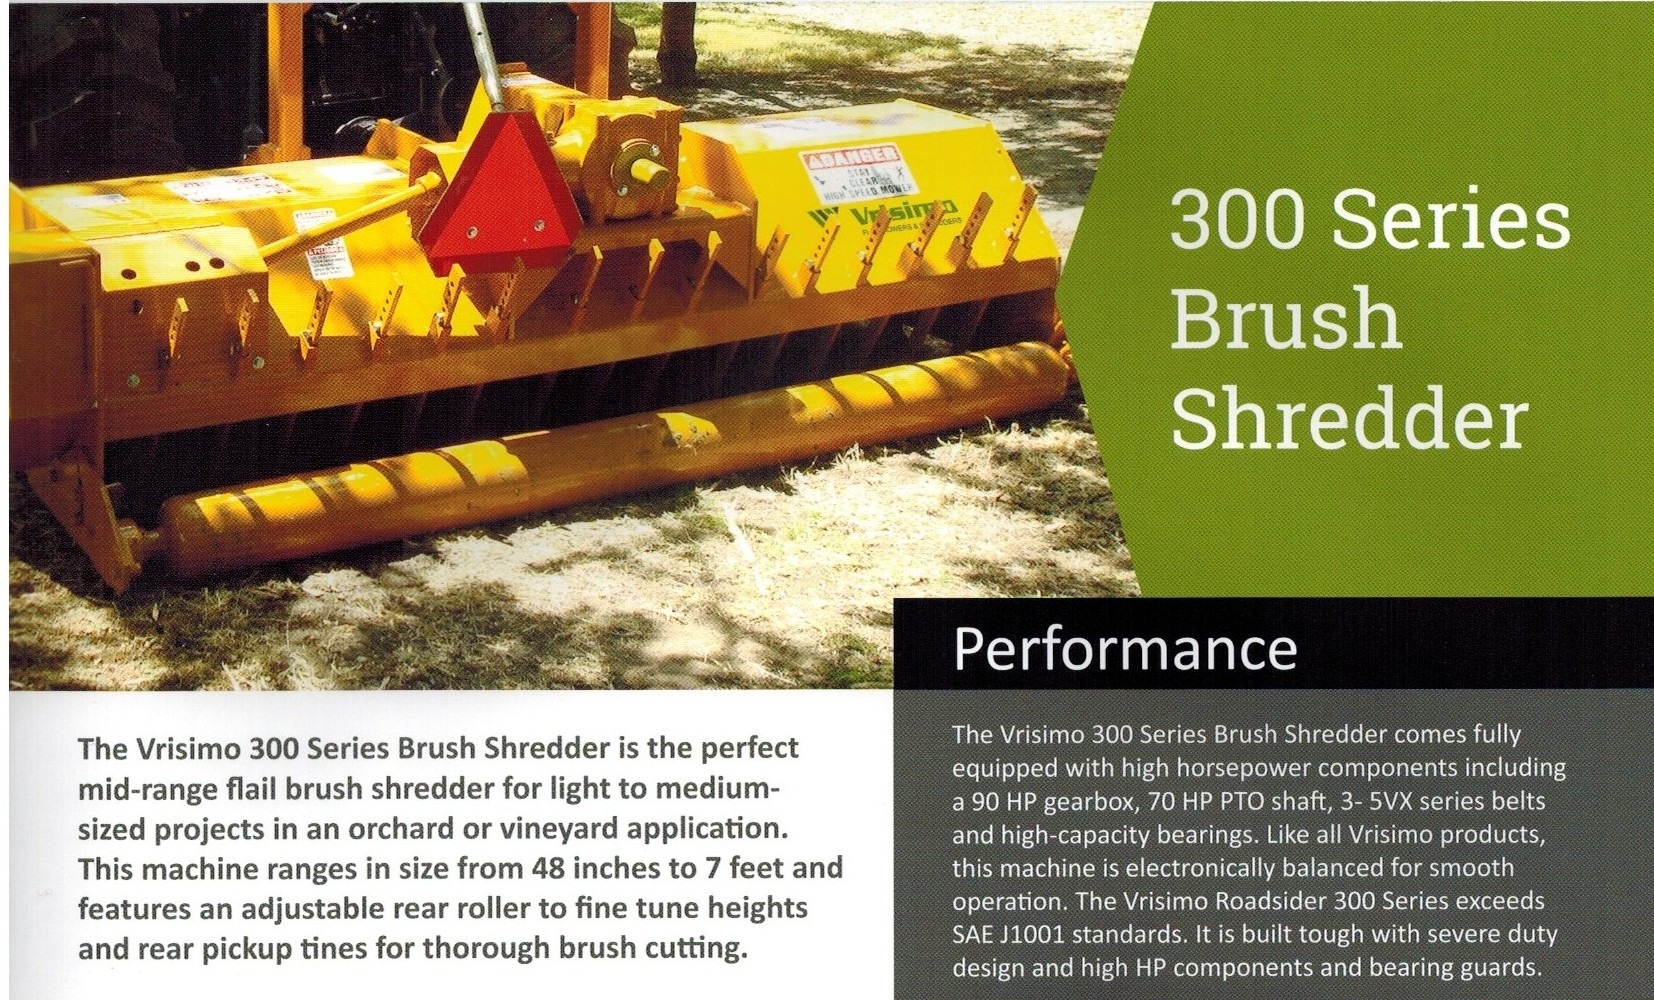 S-300 Series Vrisimo Brush Shredder